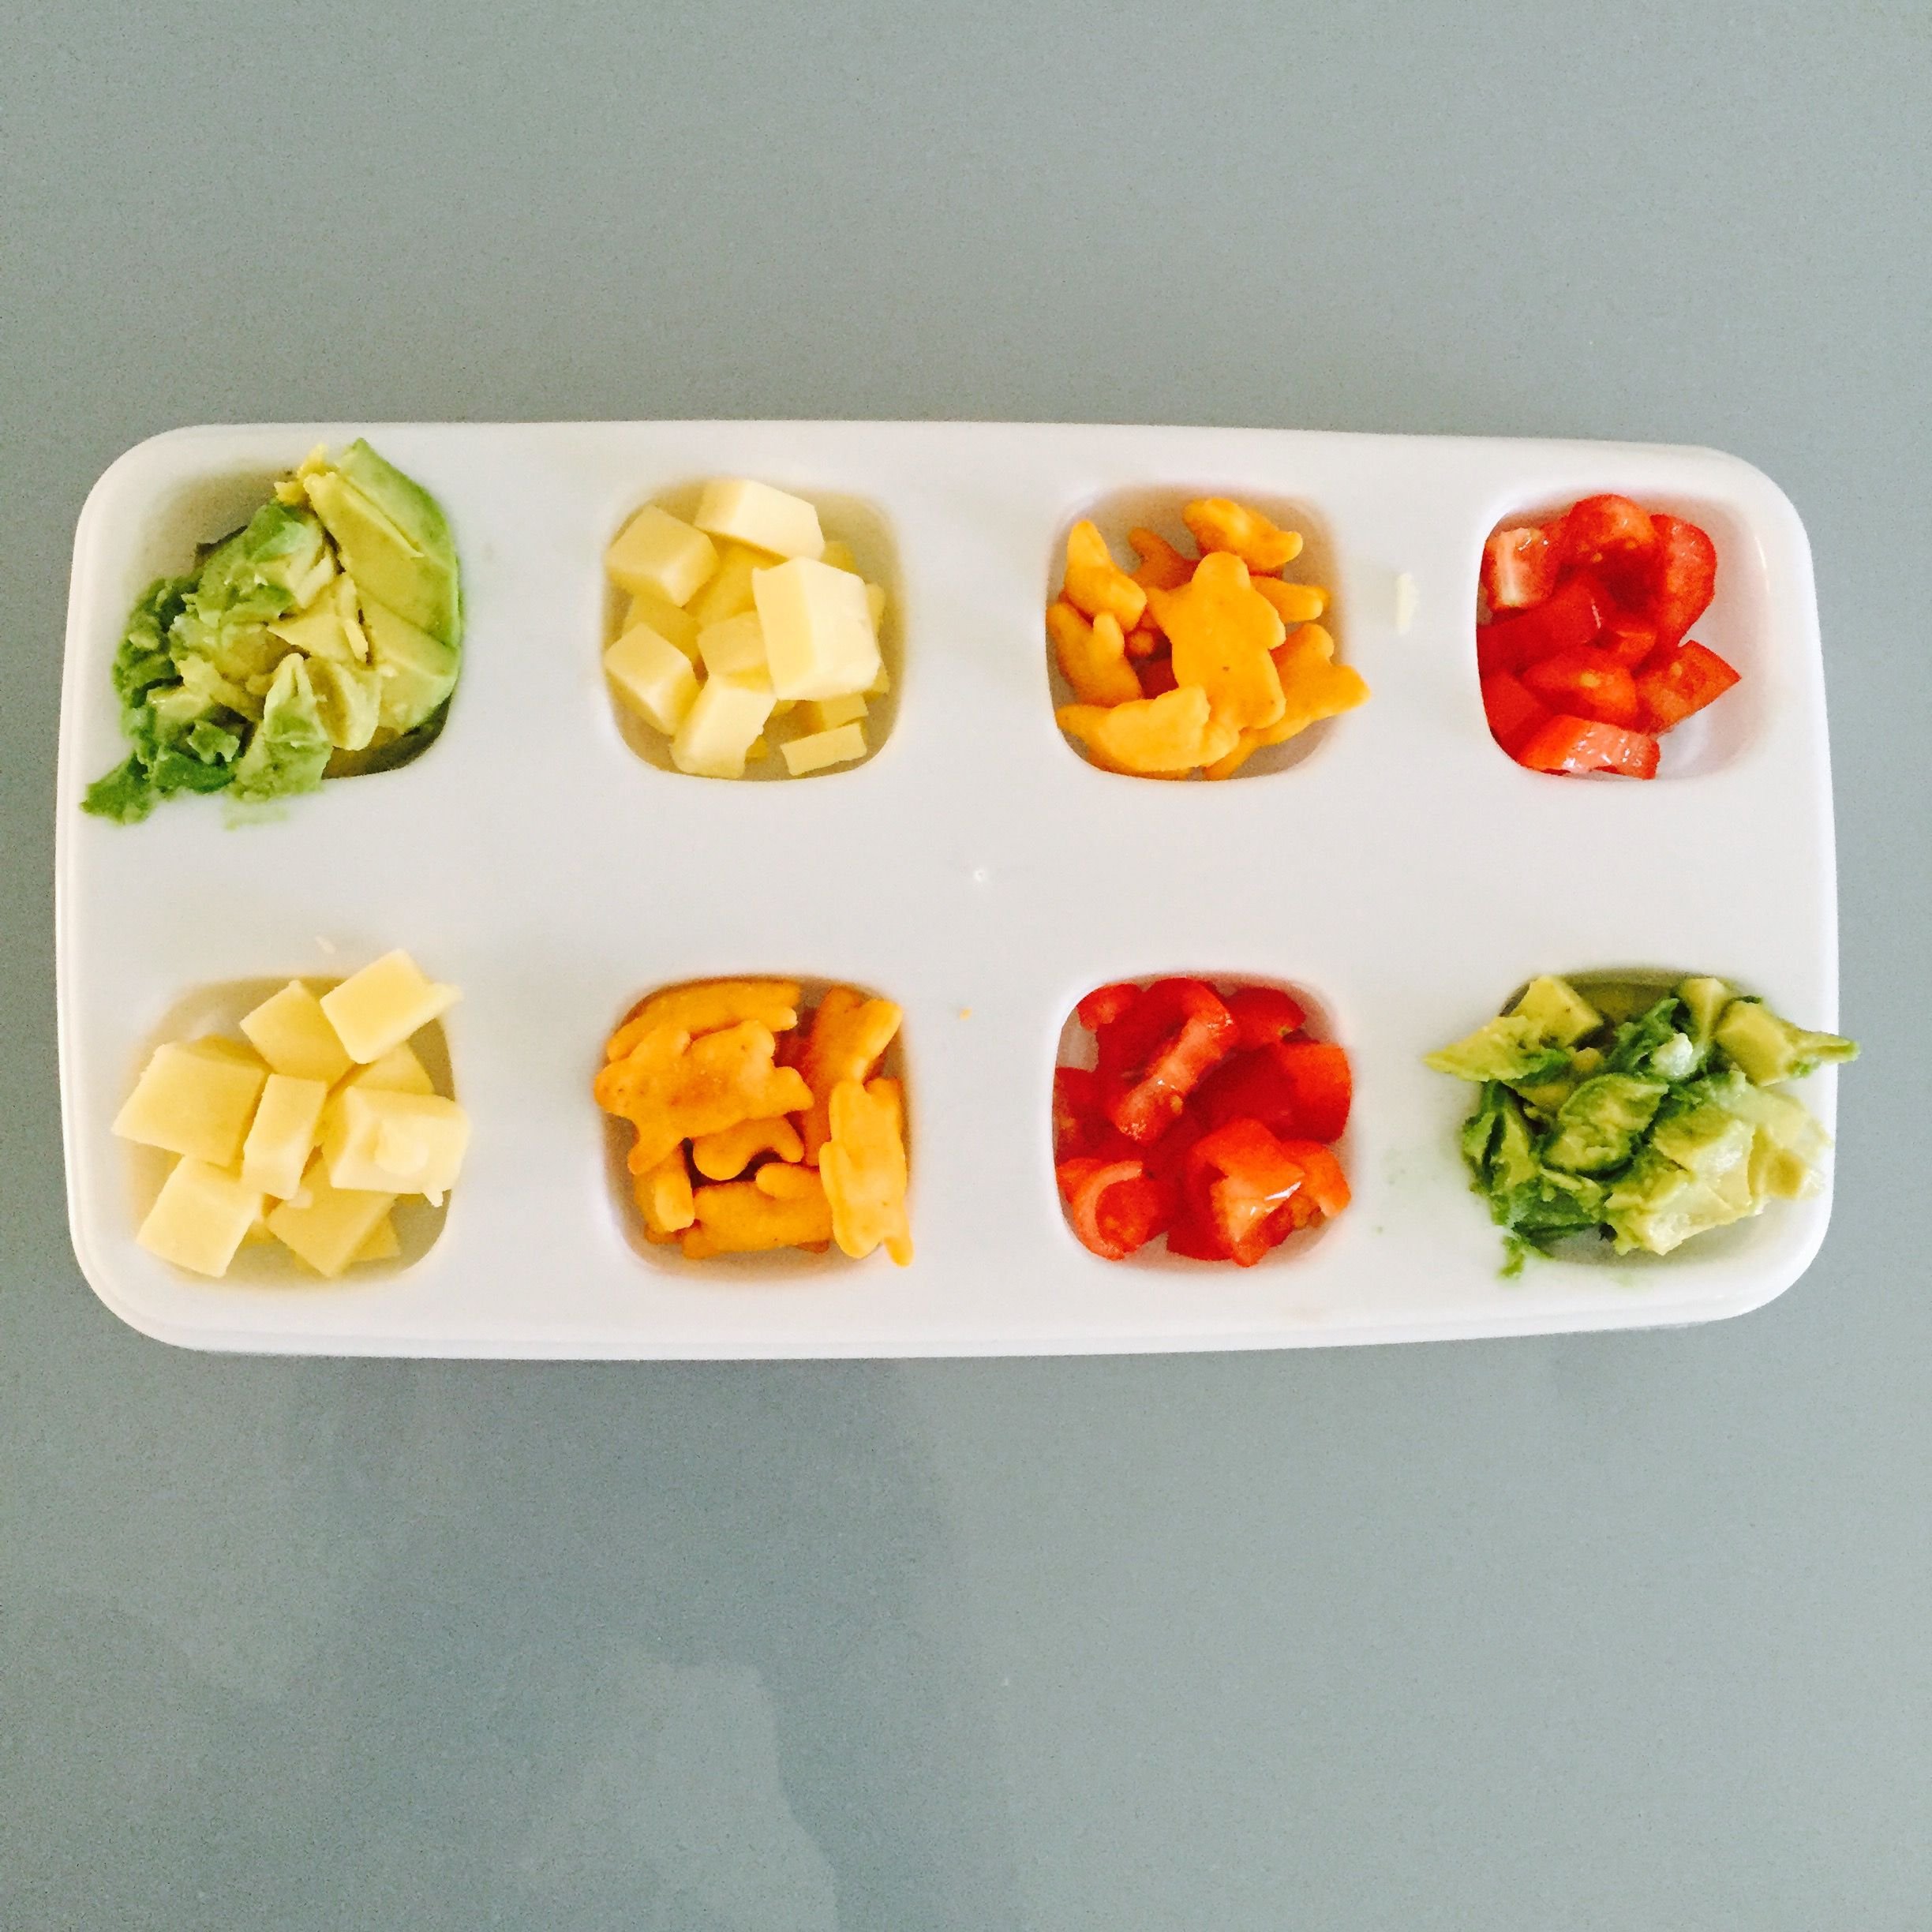 Toddler buffet: chopped avocado, diced tomato, cubed cheddar cheese, bunny crackers